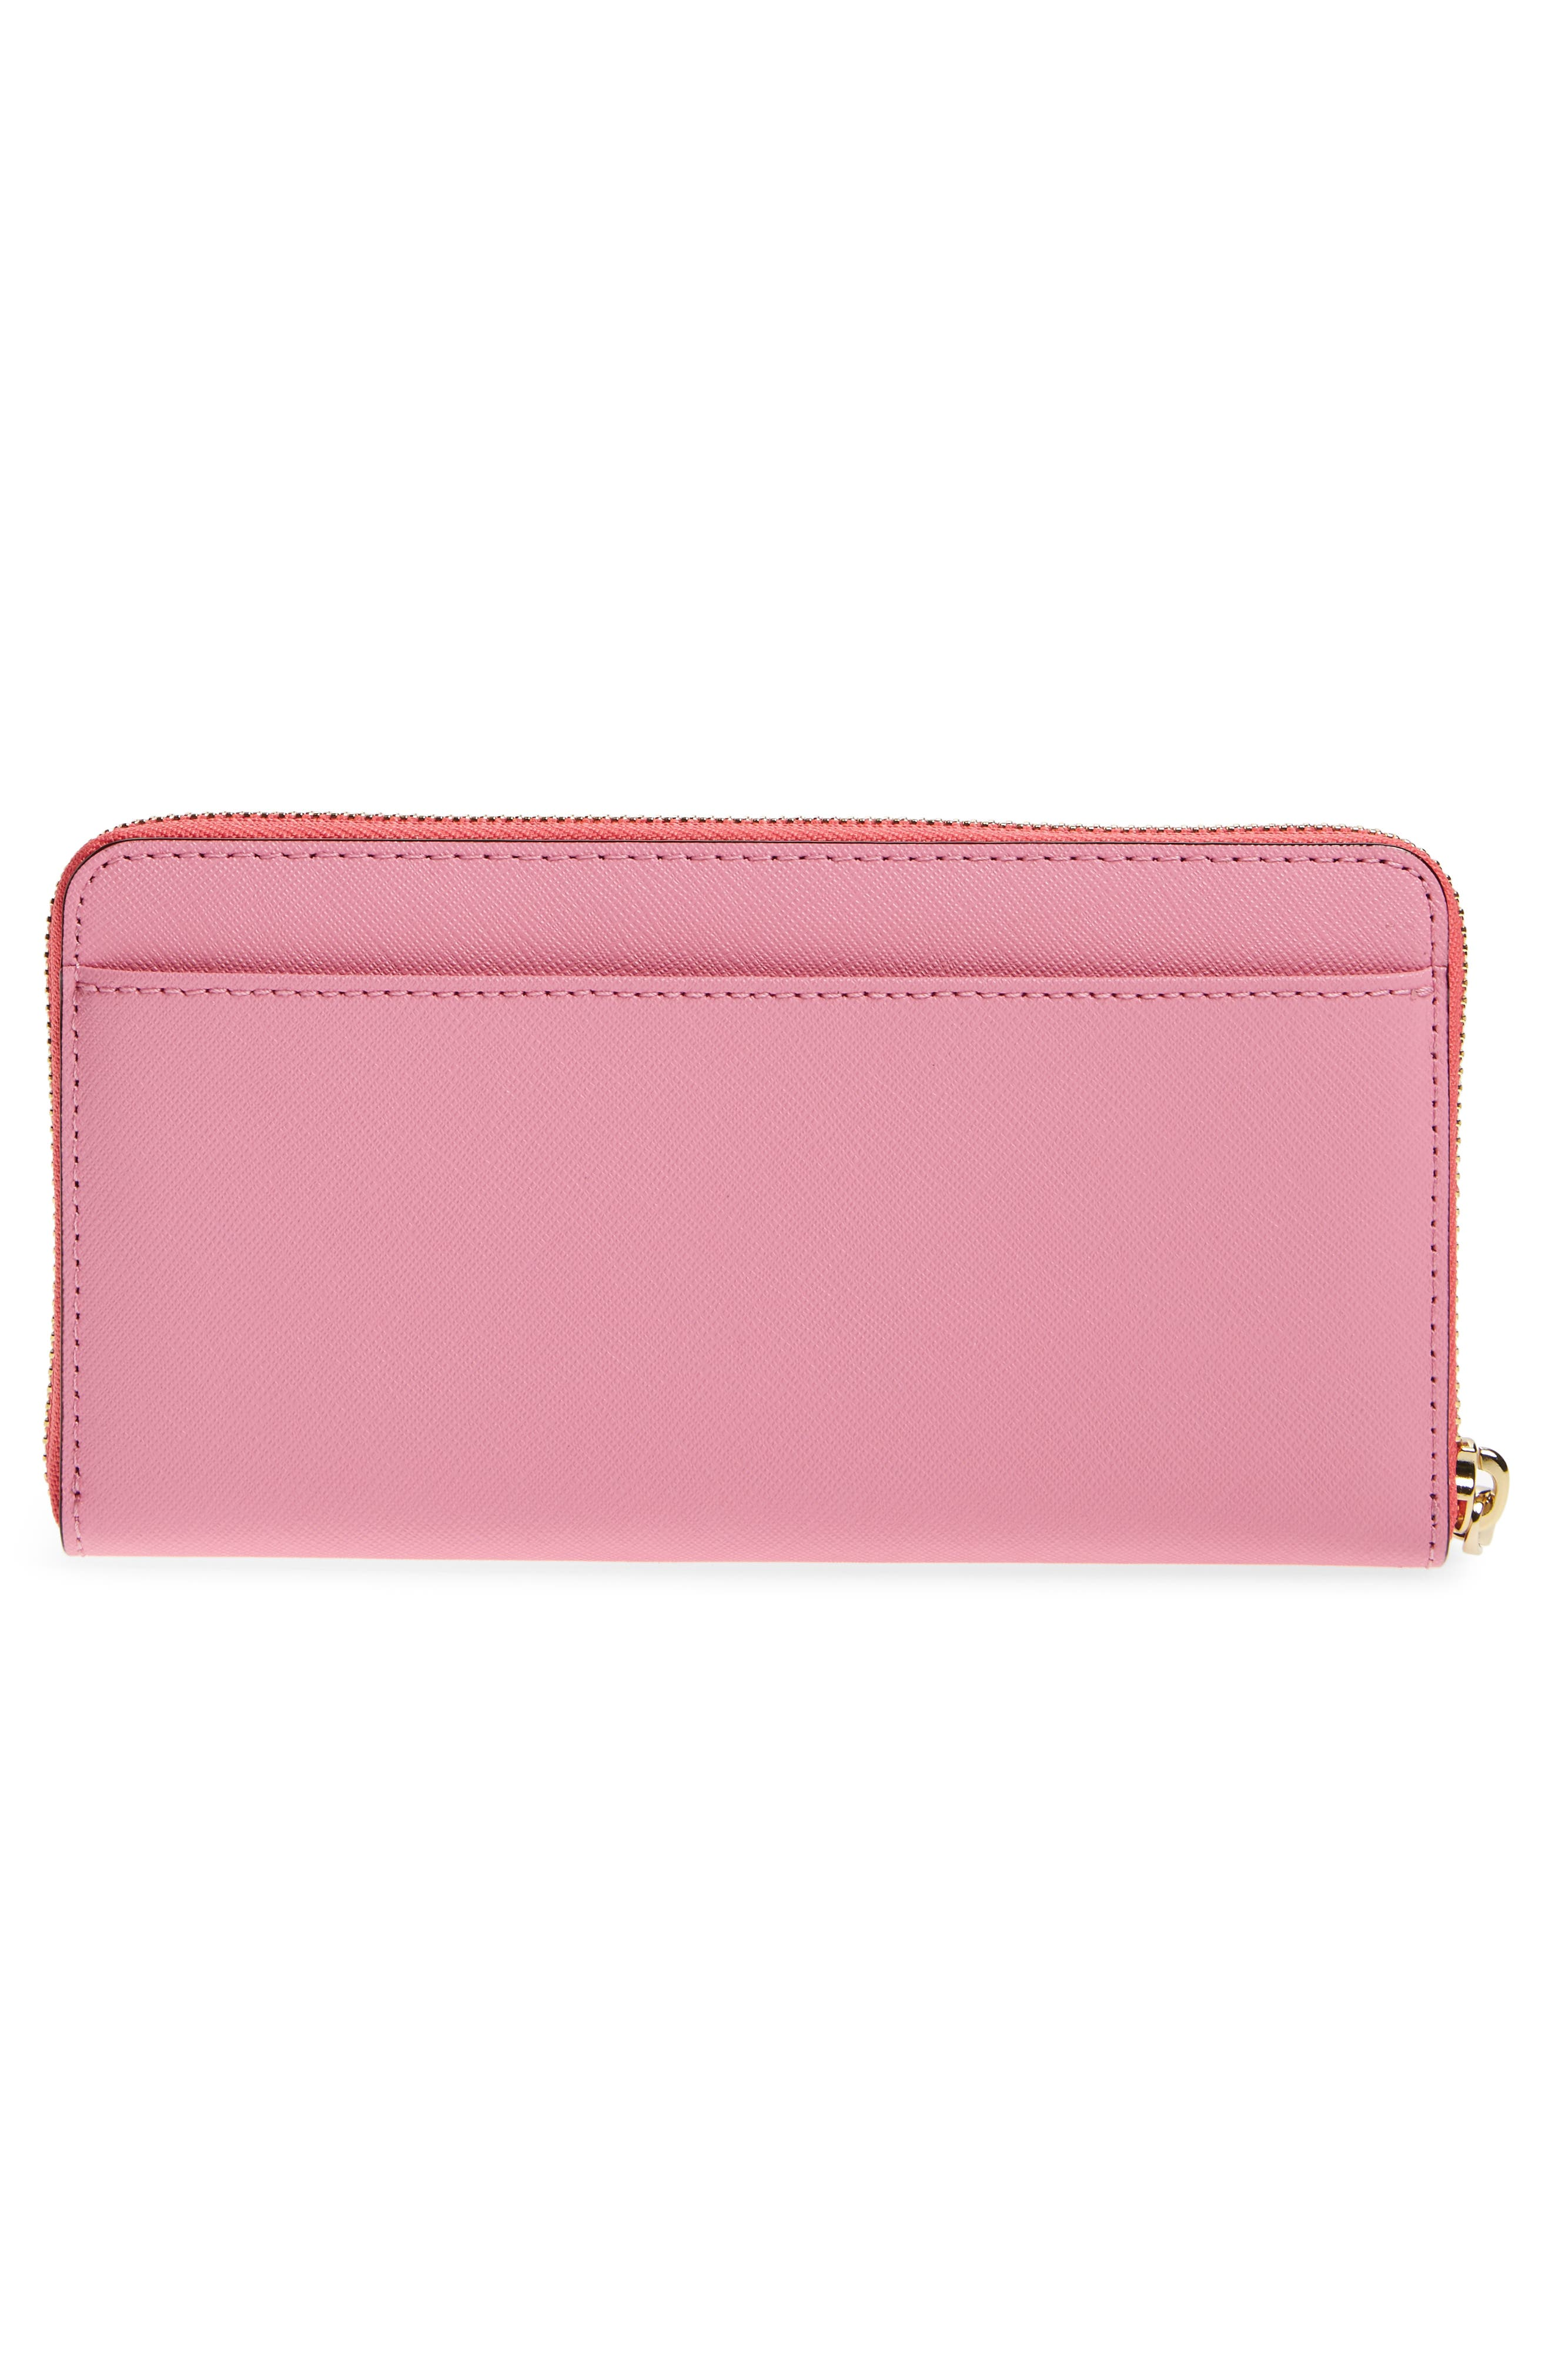 'cameron street - lacey' leather wallet,                             Alternate thumbnail 48, color,